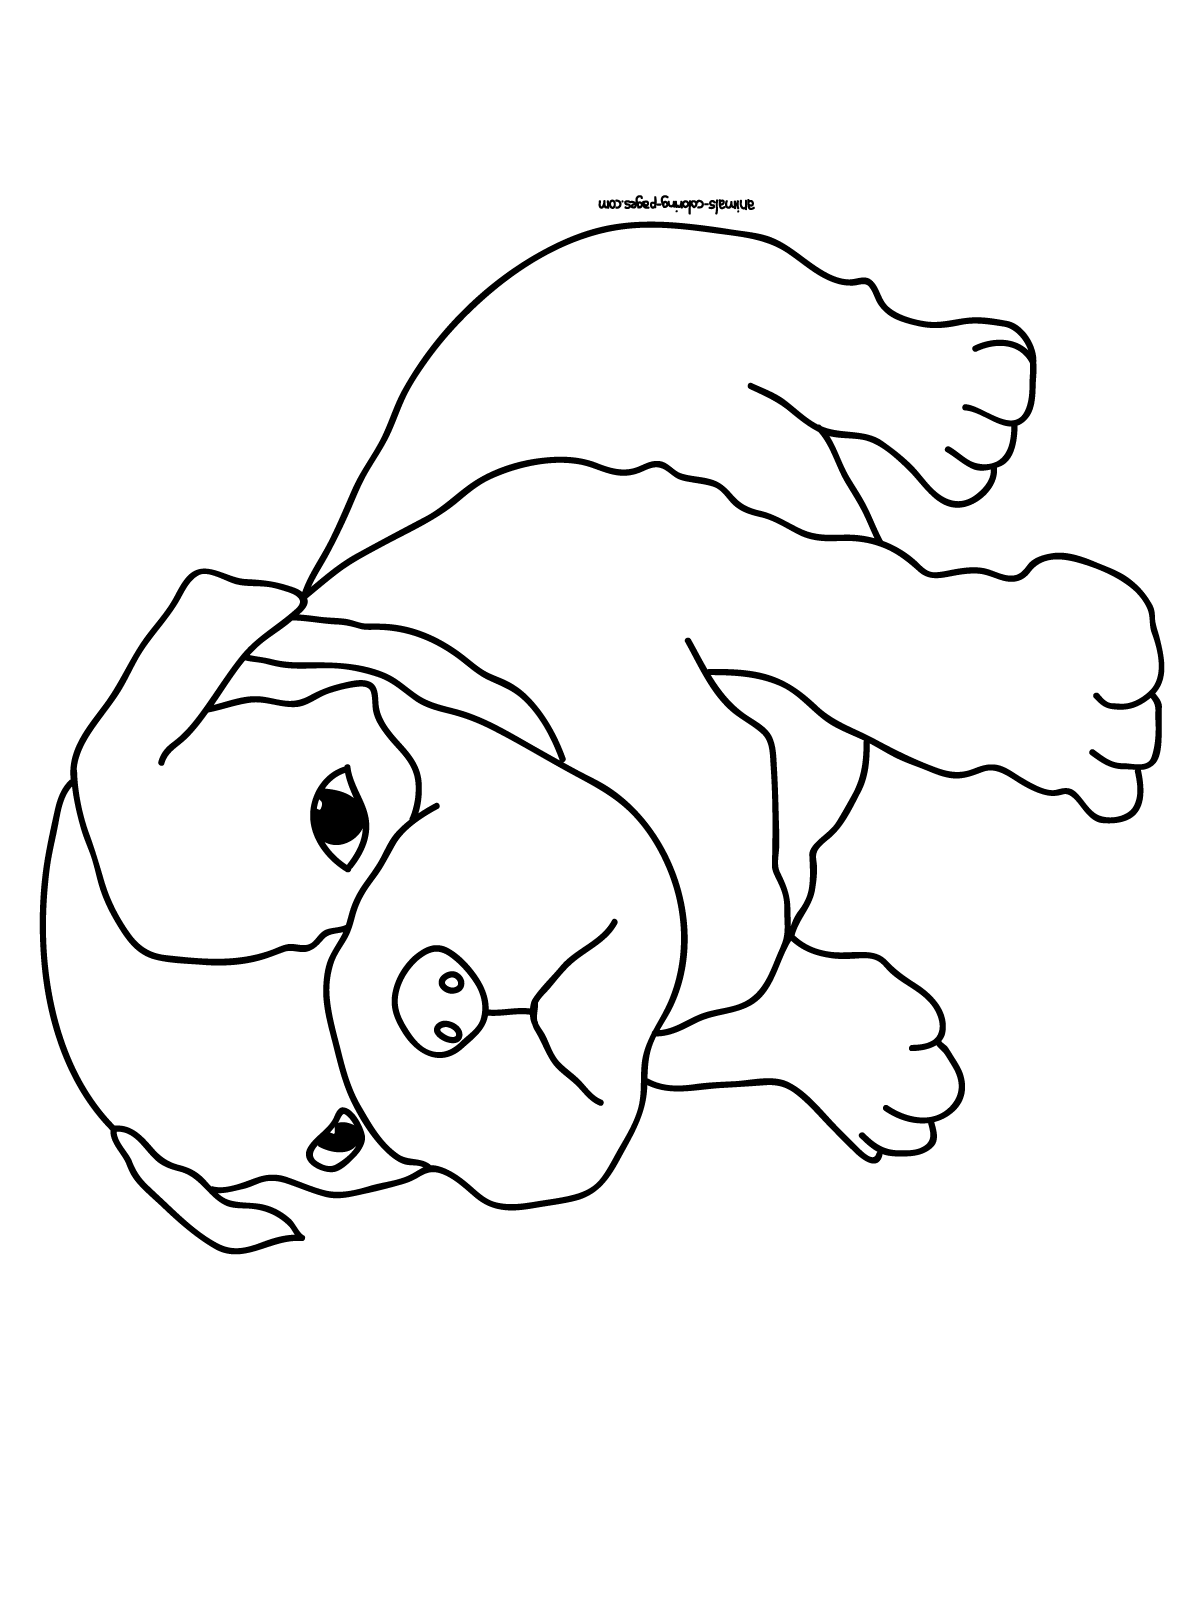 puppy pictures for coloring realistic puppy coloring pages download and print for free coloring pictures puppy for